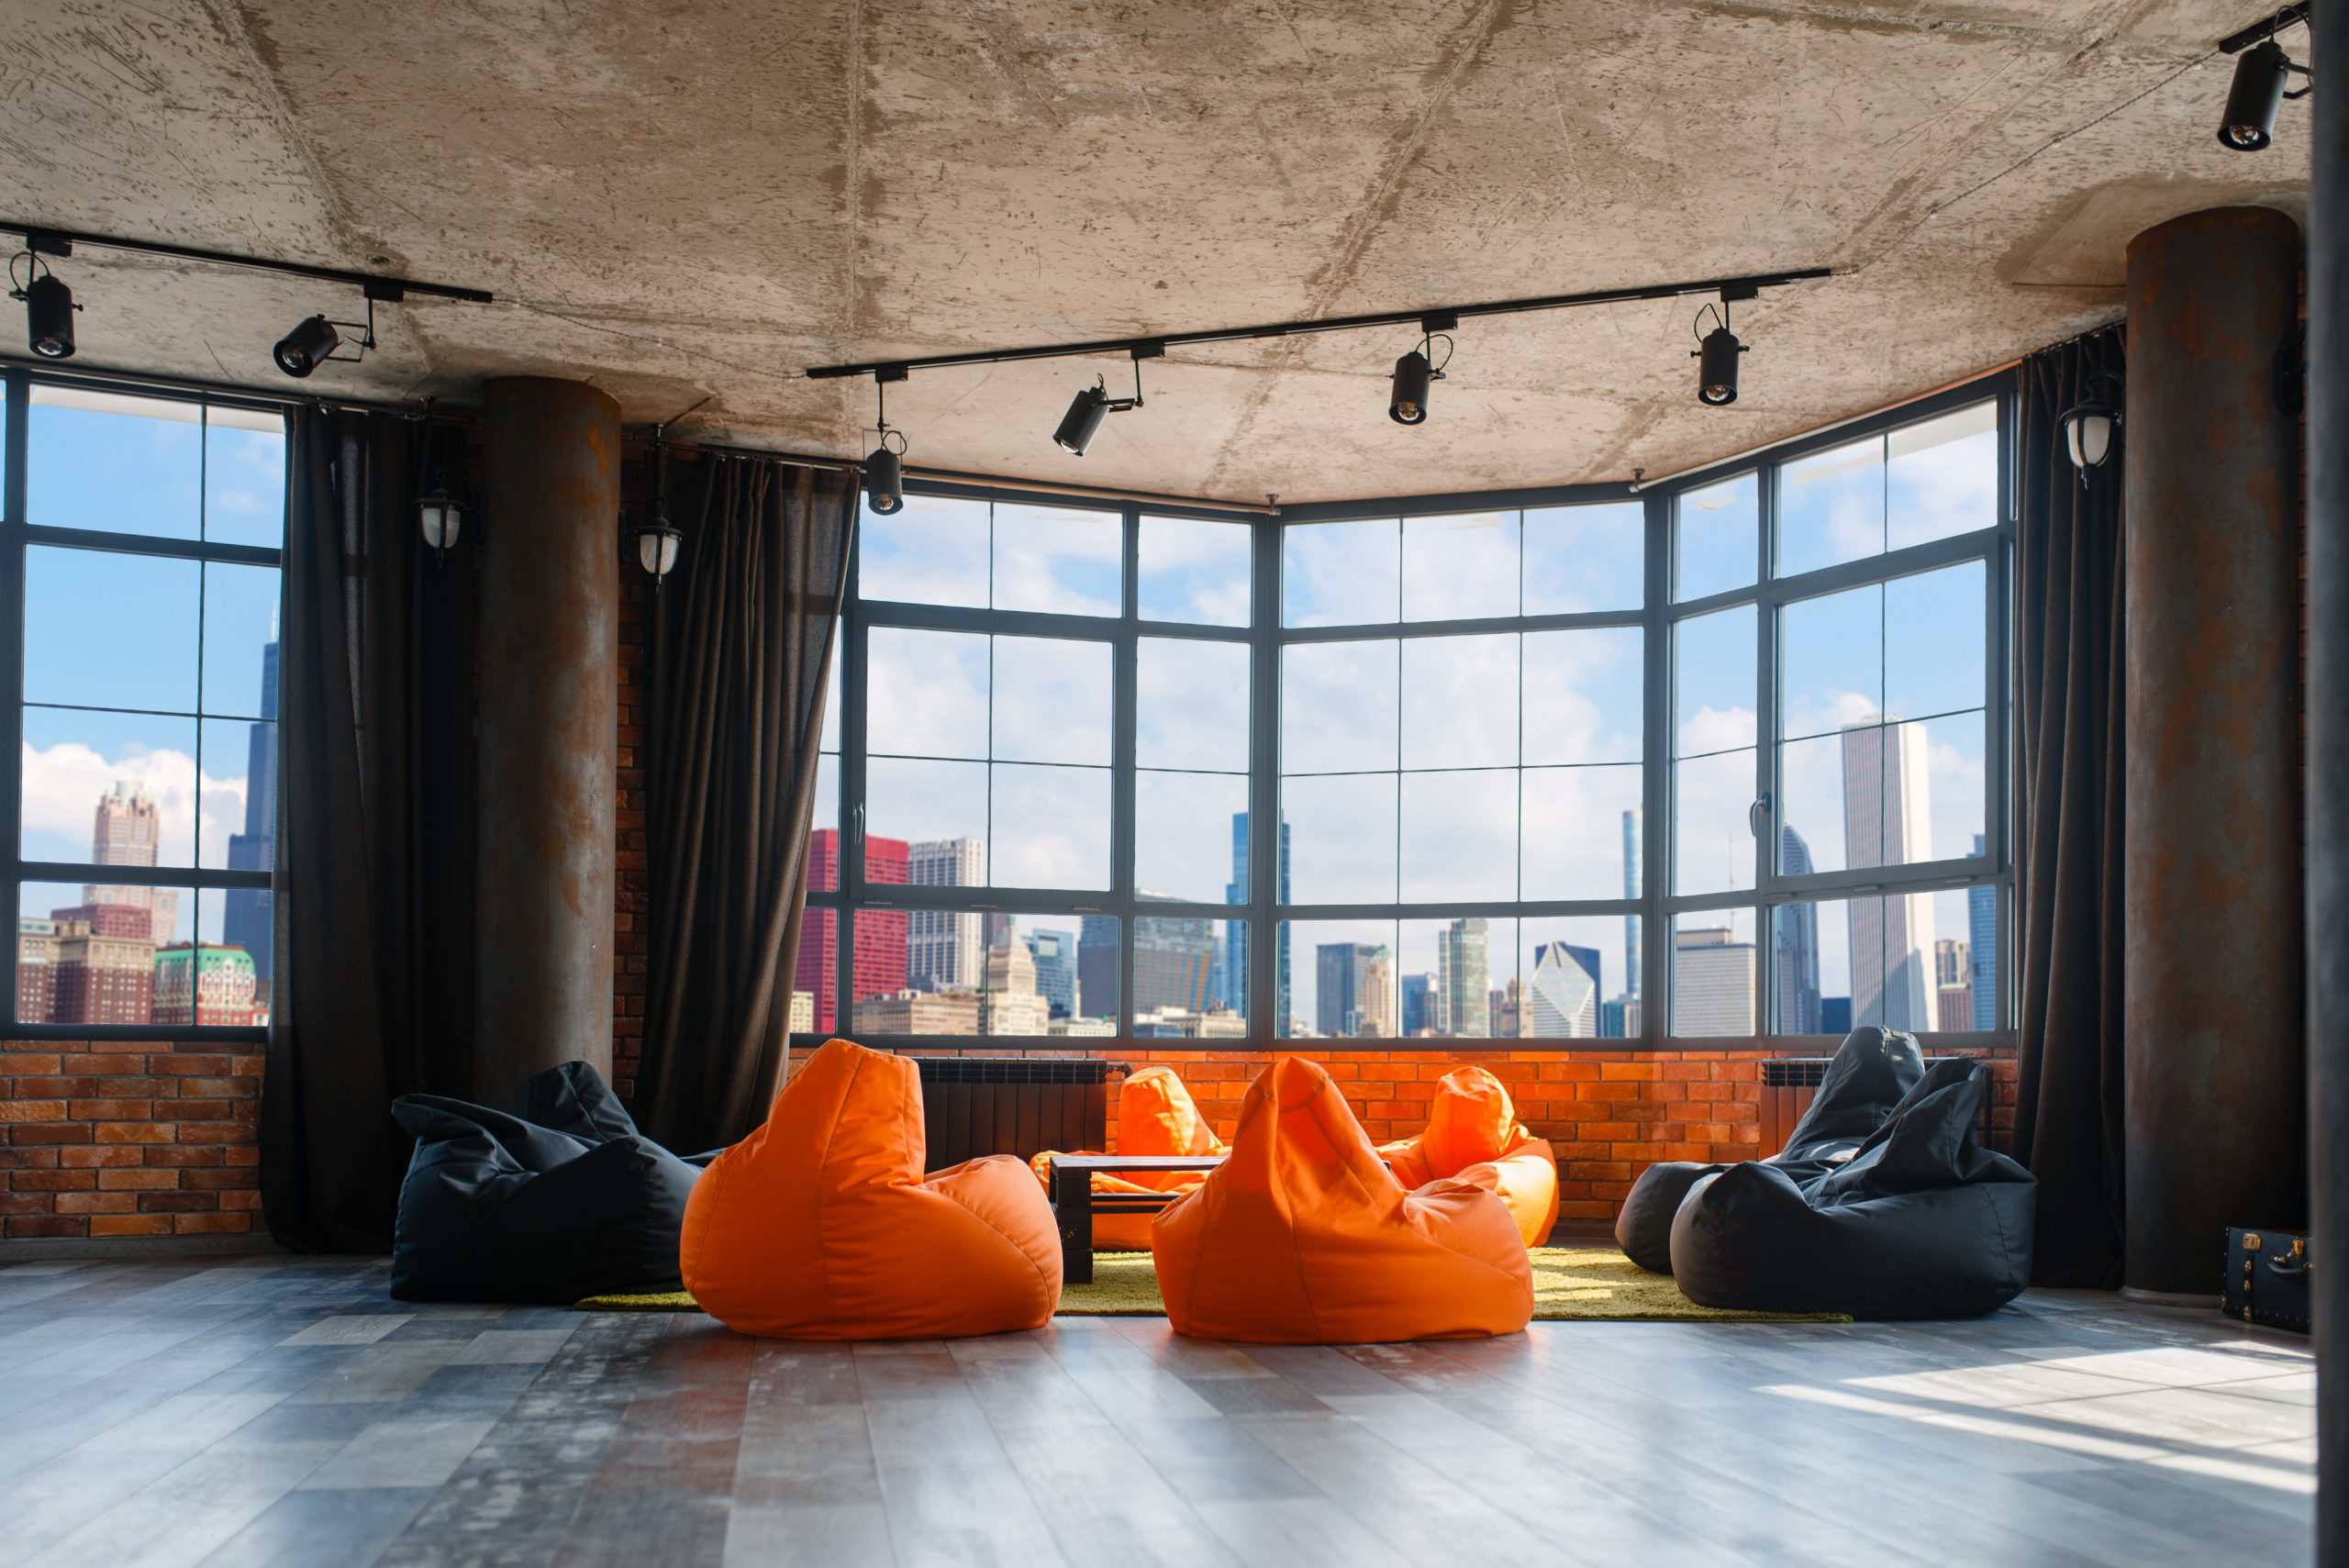 Apartment studio with panoramic cityscape view, nobody. Living roomin grunge style with big windows, coffee table and modern chairs, downtown city with skyscrapers on background, panorama